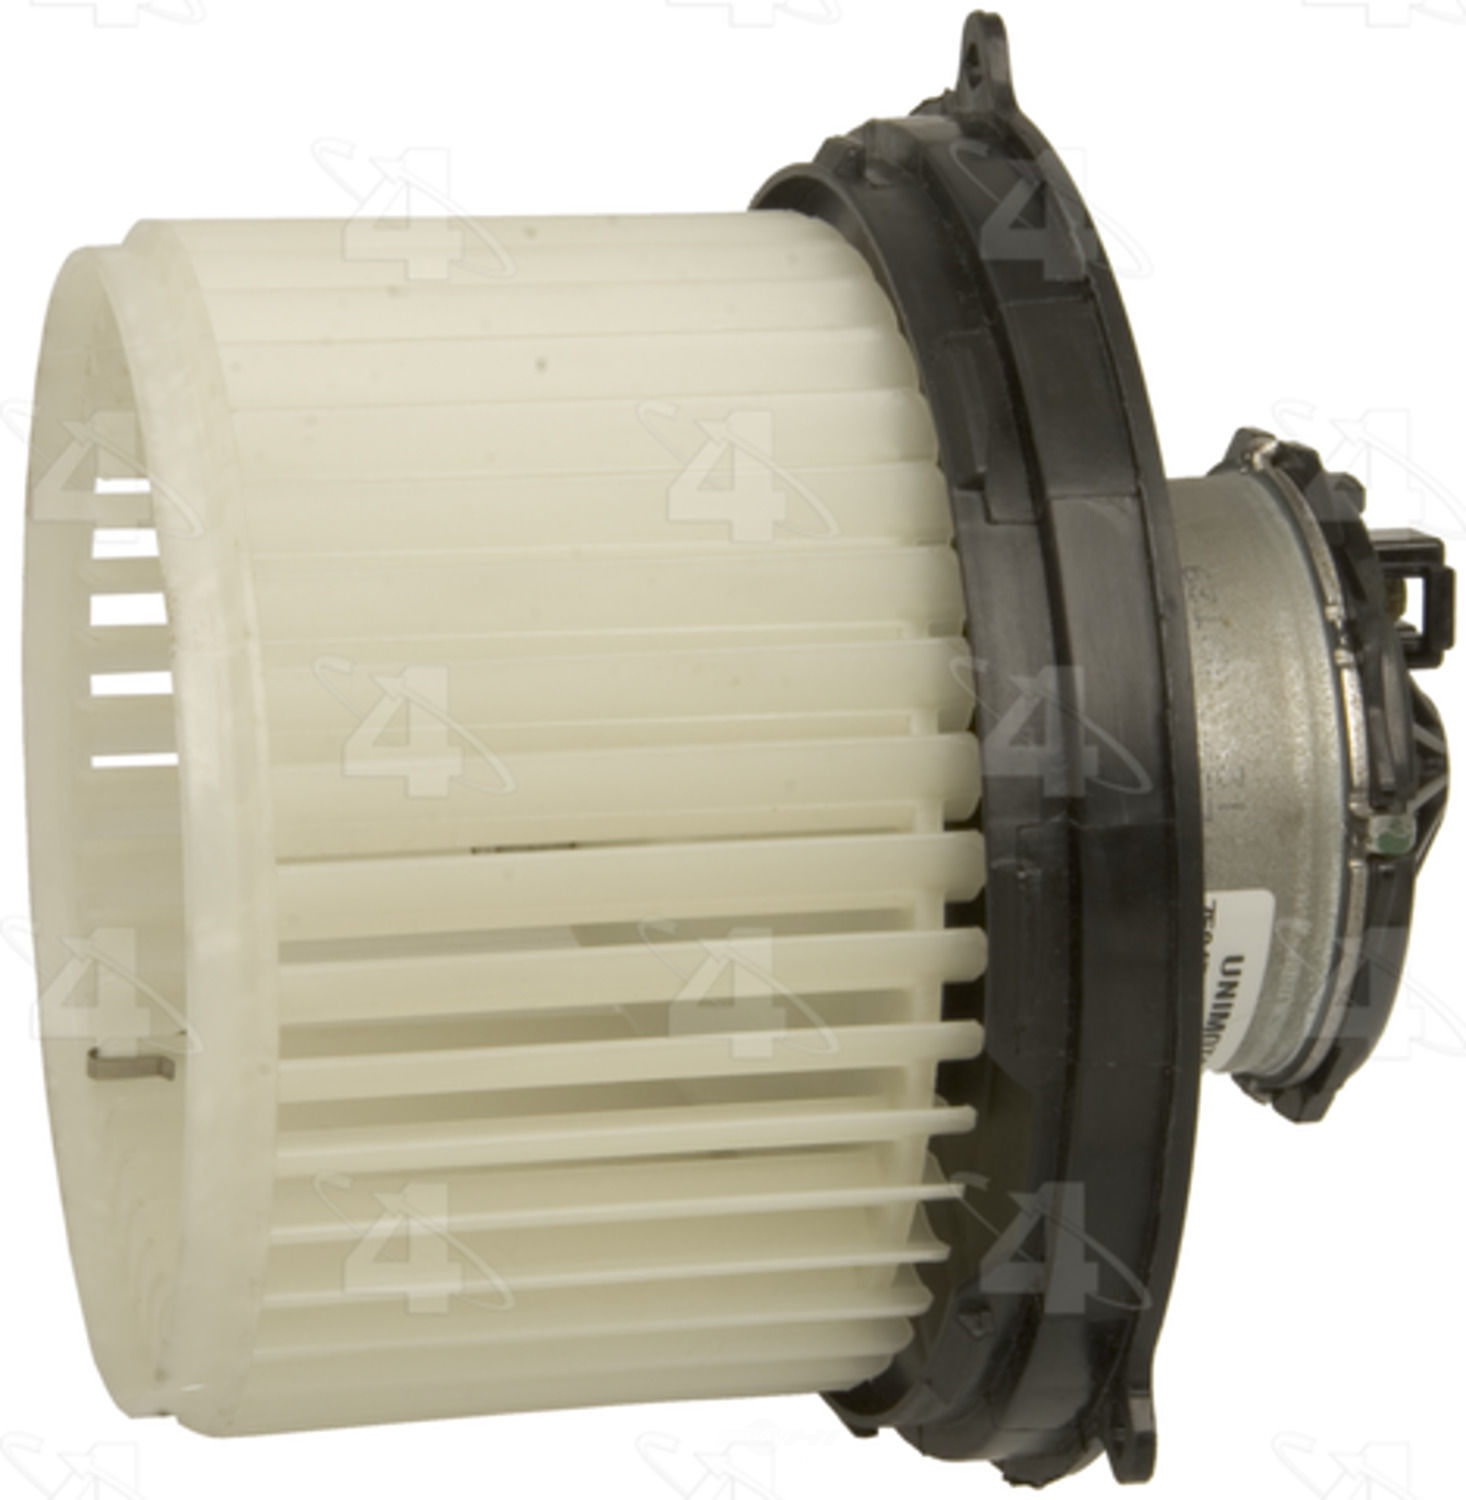 FOUR SEASONS - HVAC Blower Motor - FSE 75847